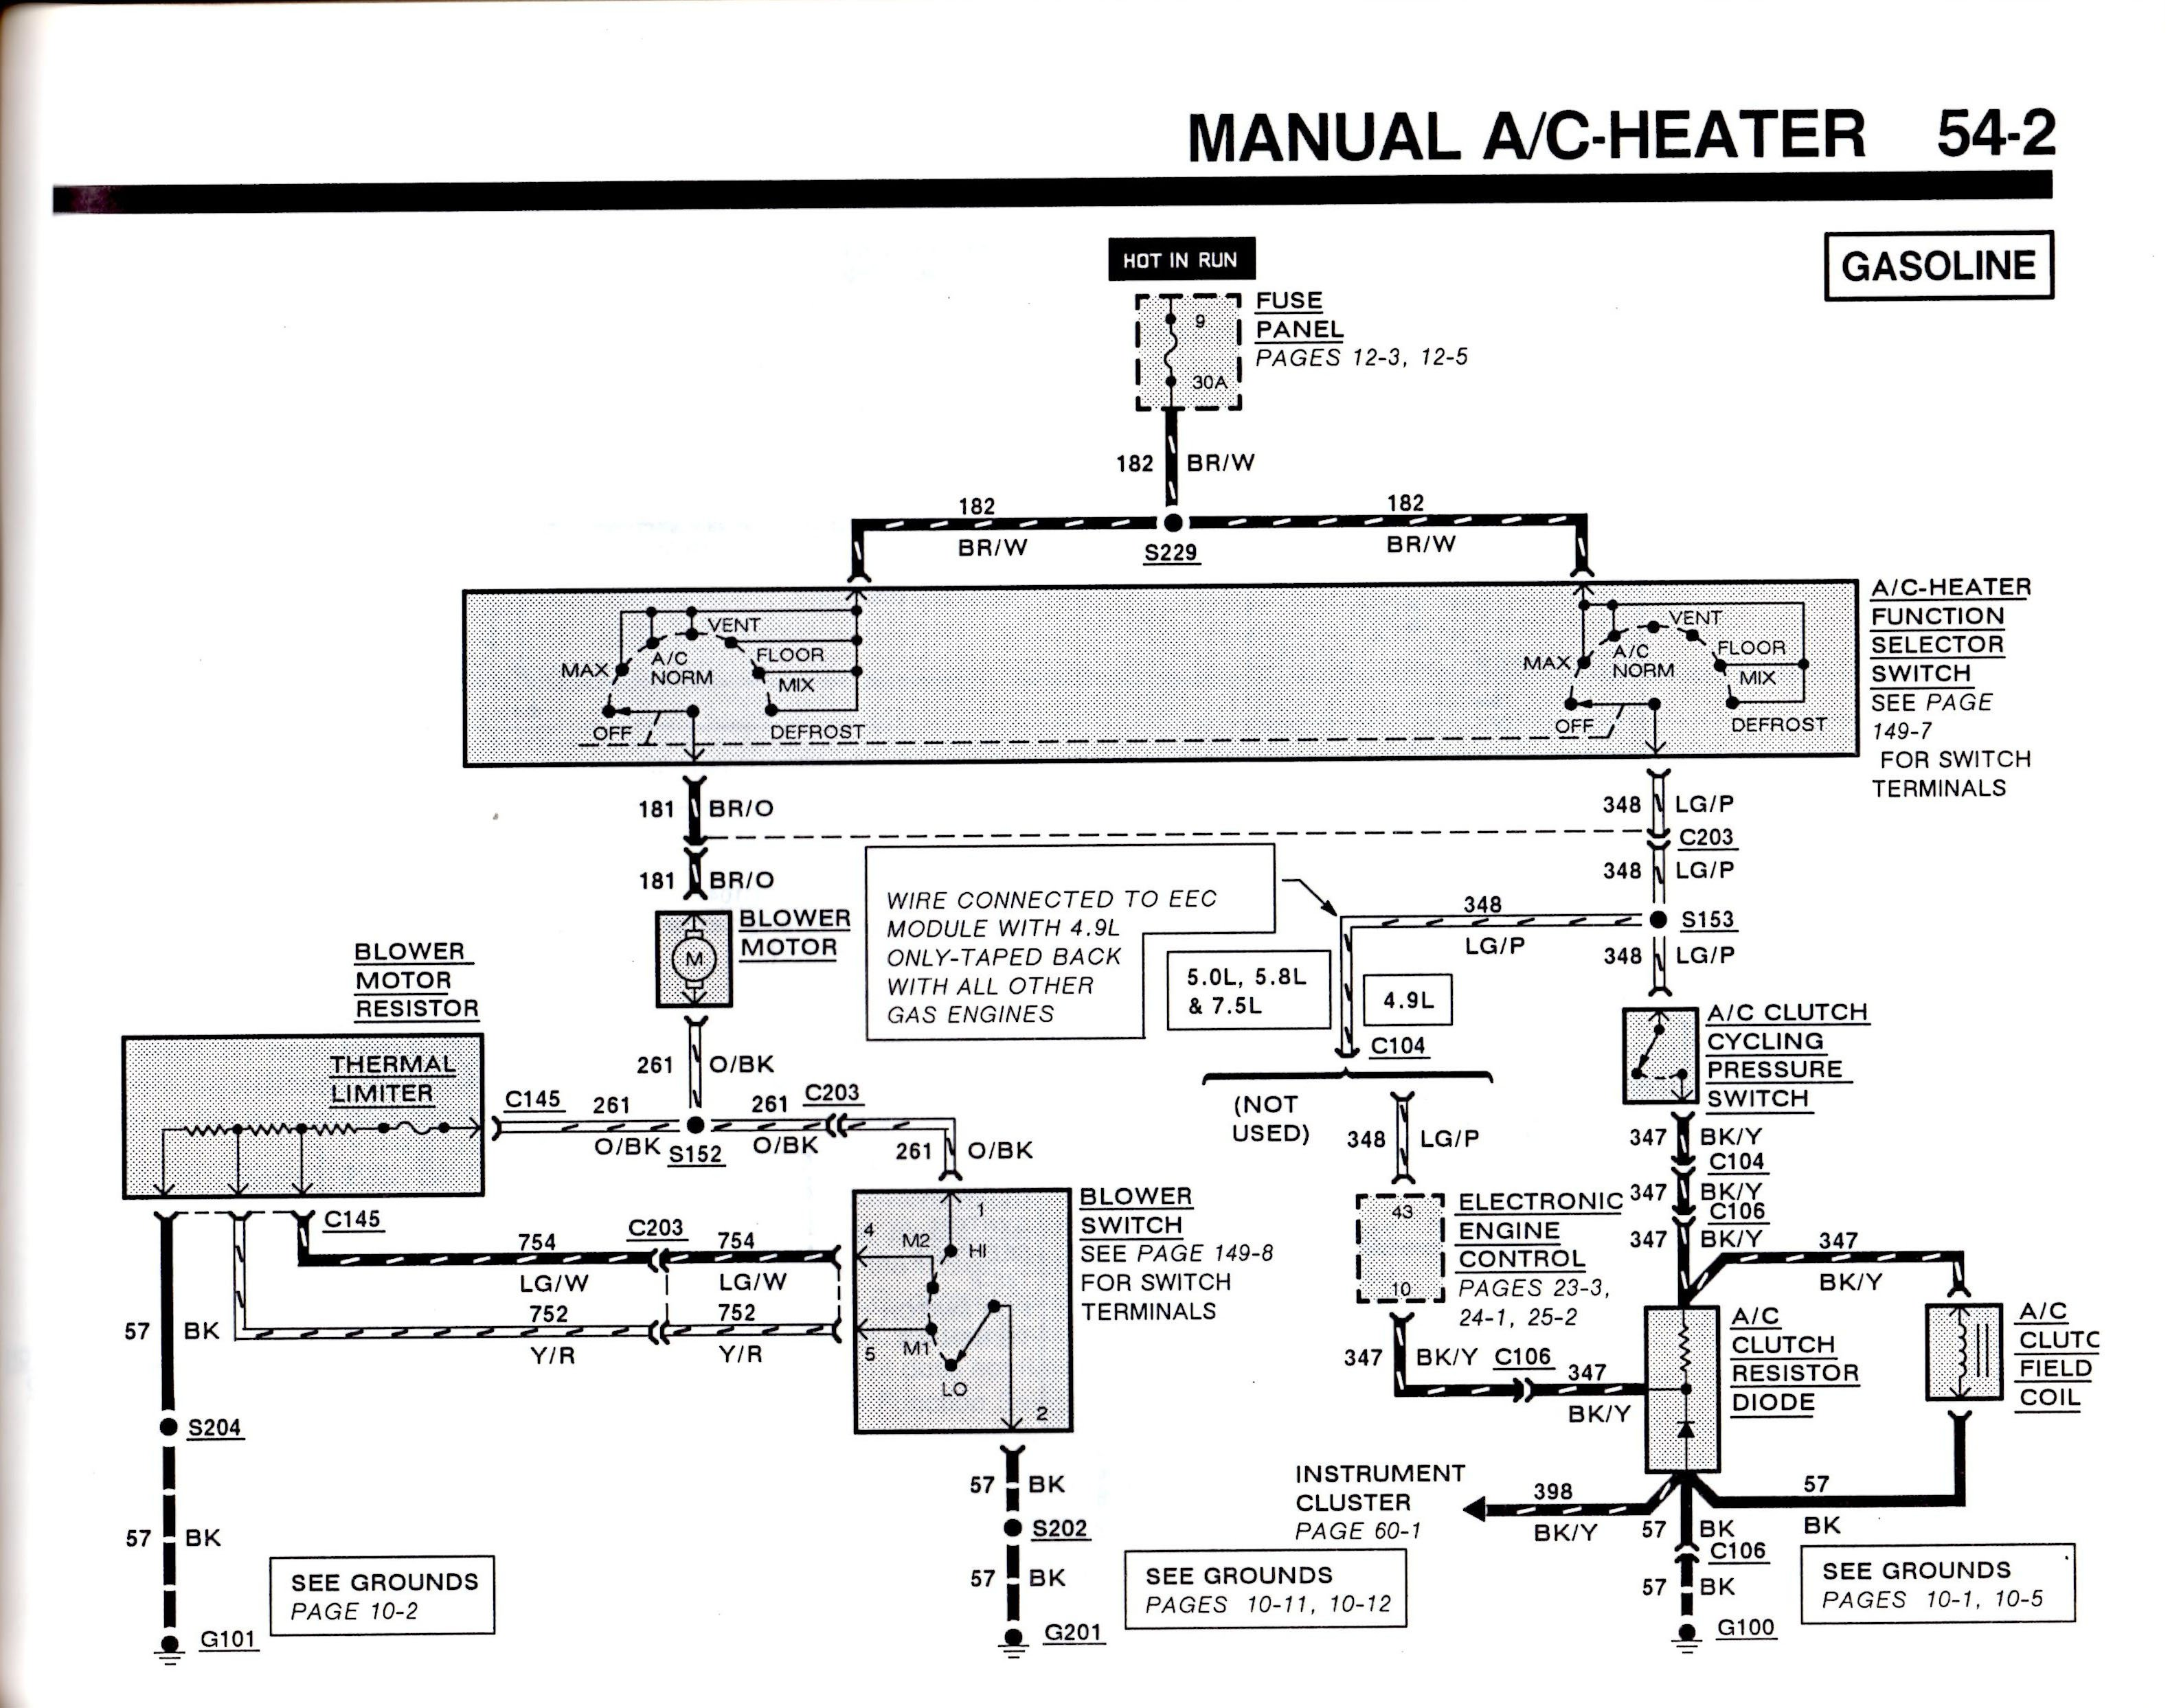 1988 ford f150 air conditioner diagram wiring diagram rh casamagdalena us  2010 F150 Turn Signal Wiring